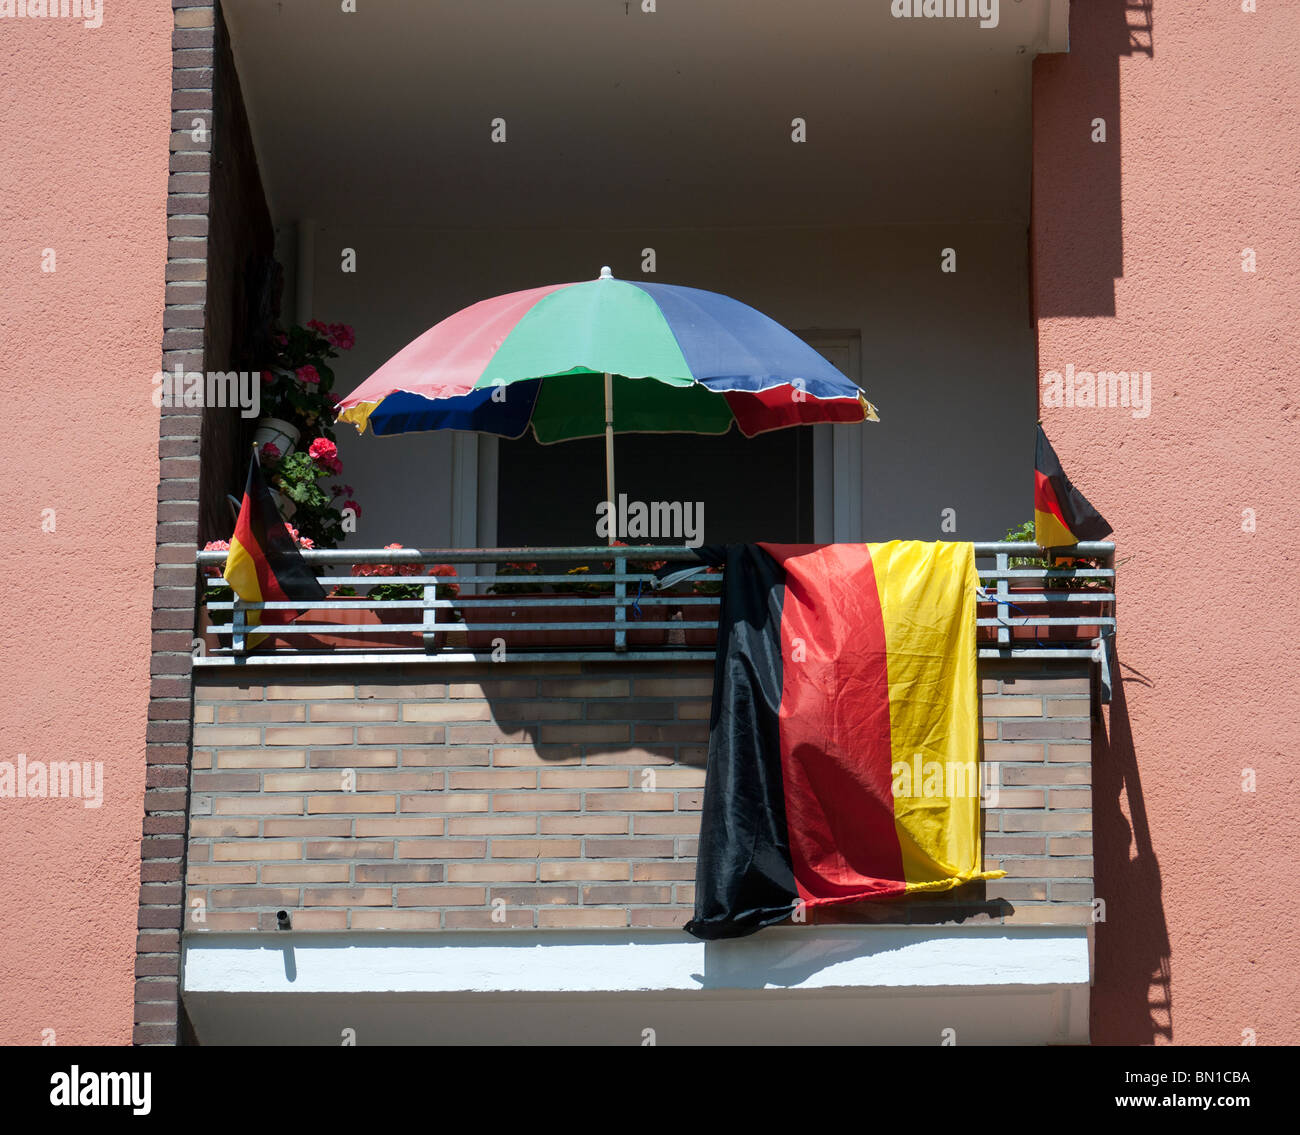 balcony with German flag and parasol during football World Cup 2010 in Berlin Germany - Stock Image